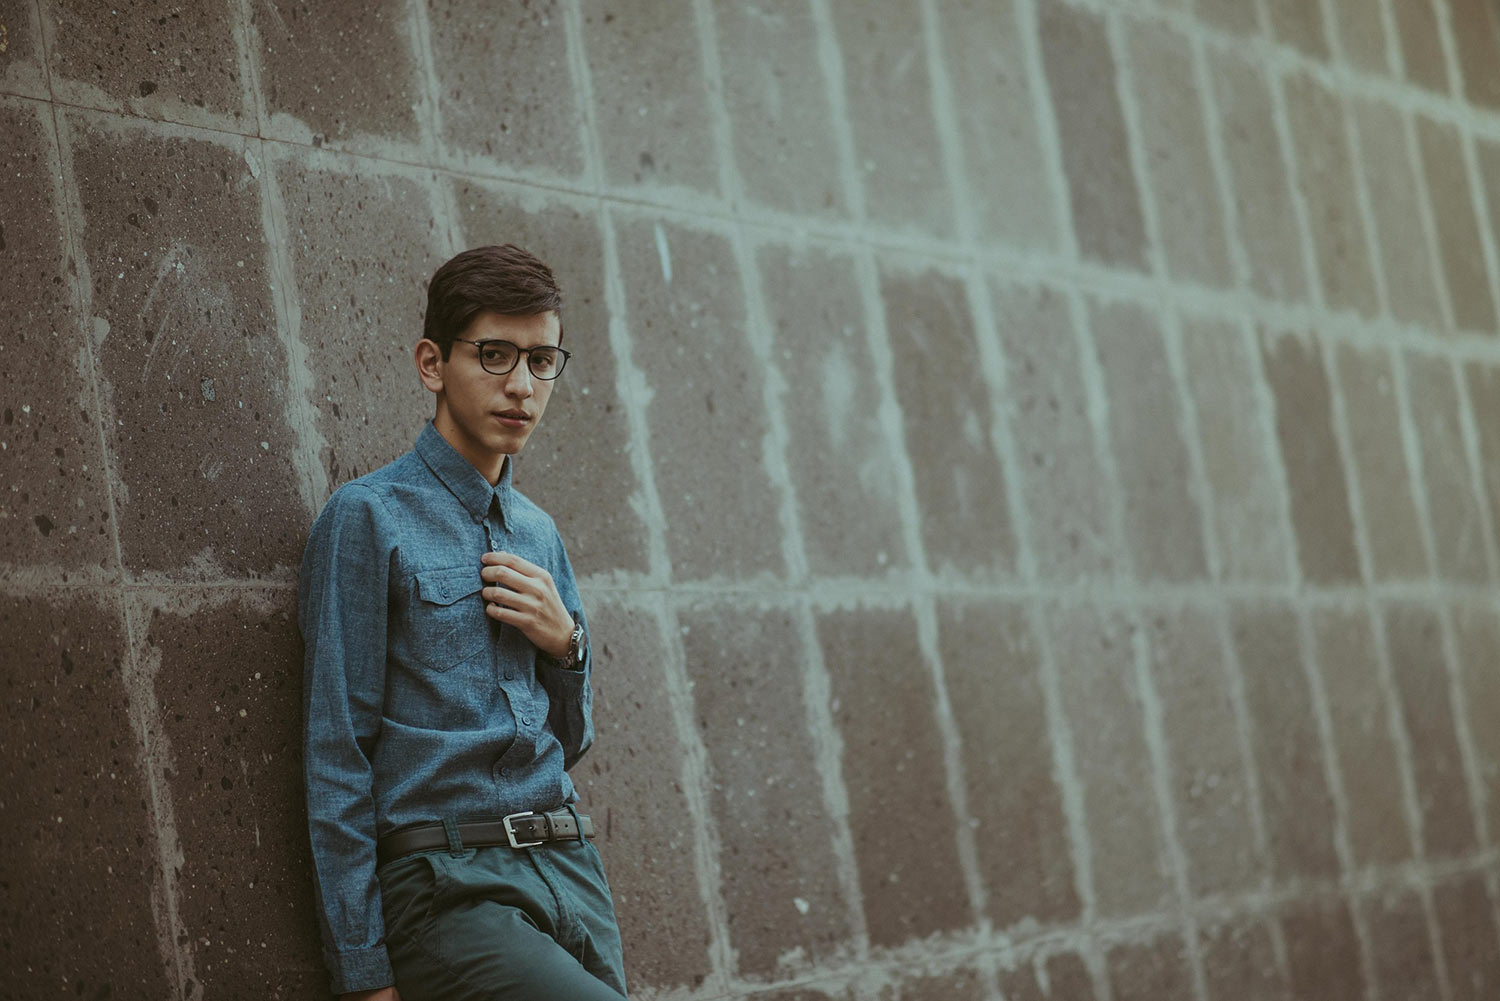 A teen boy in a blue button-up shirt leans against a concrete wall and stares warily at the camera.